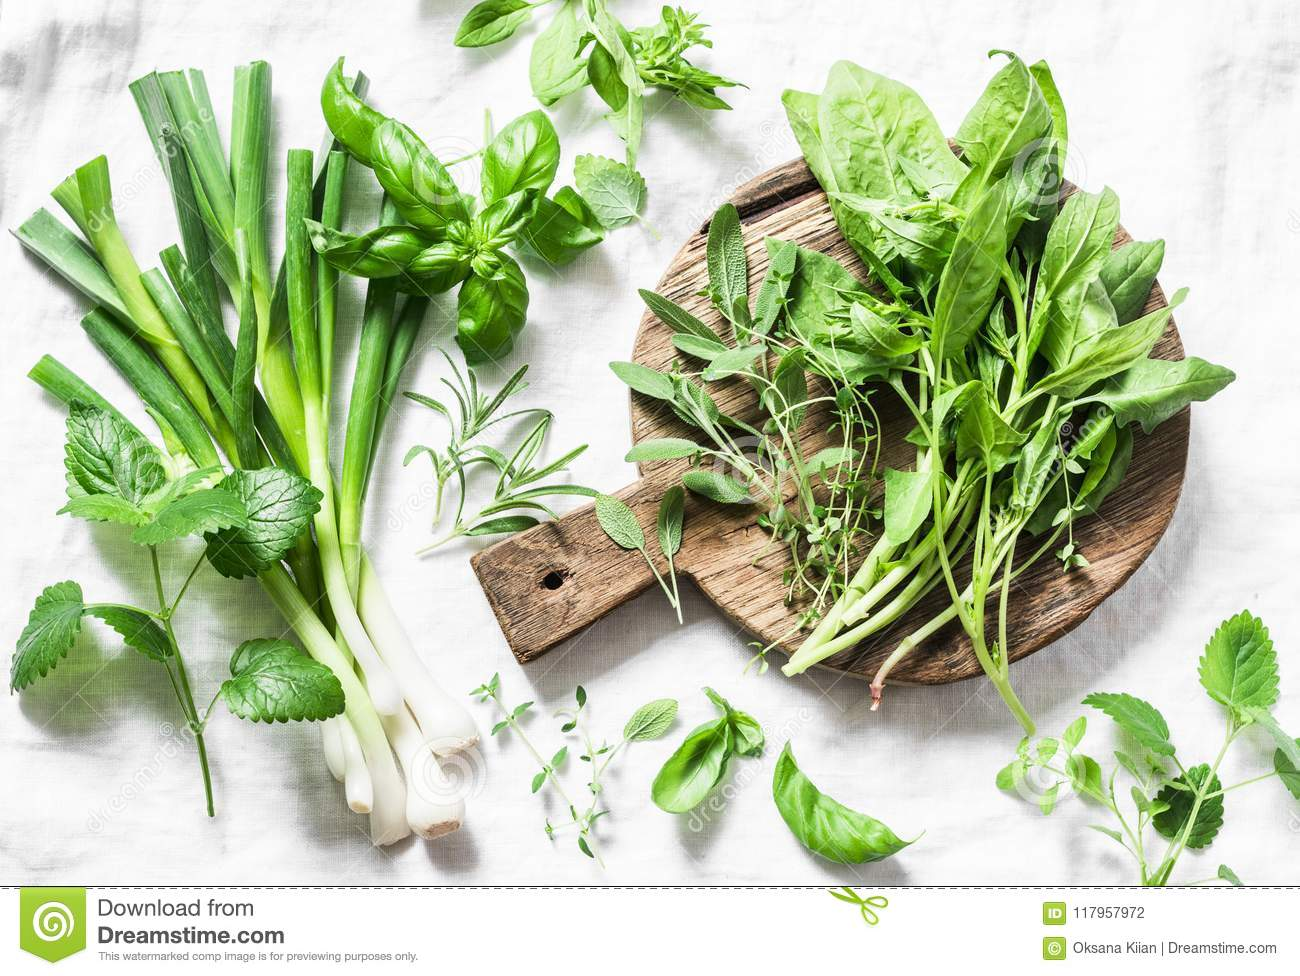 Garden herbs - spinach, basil, thyme, rosemary, sage, mint, onion, garlic on a light background, top view. Fresh food ingredients